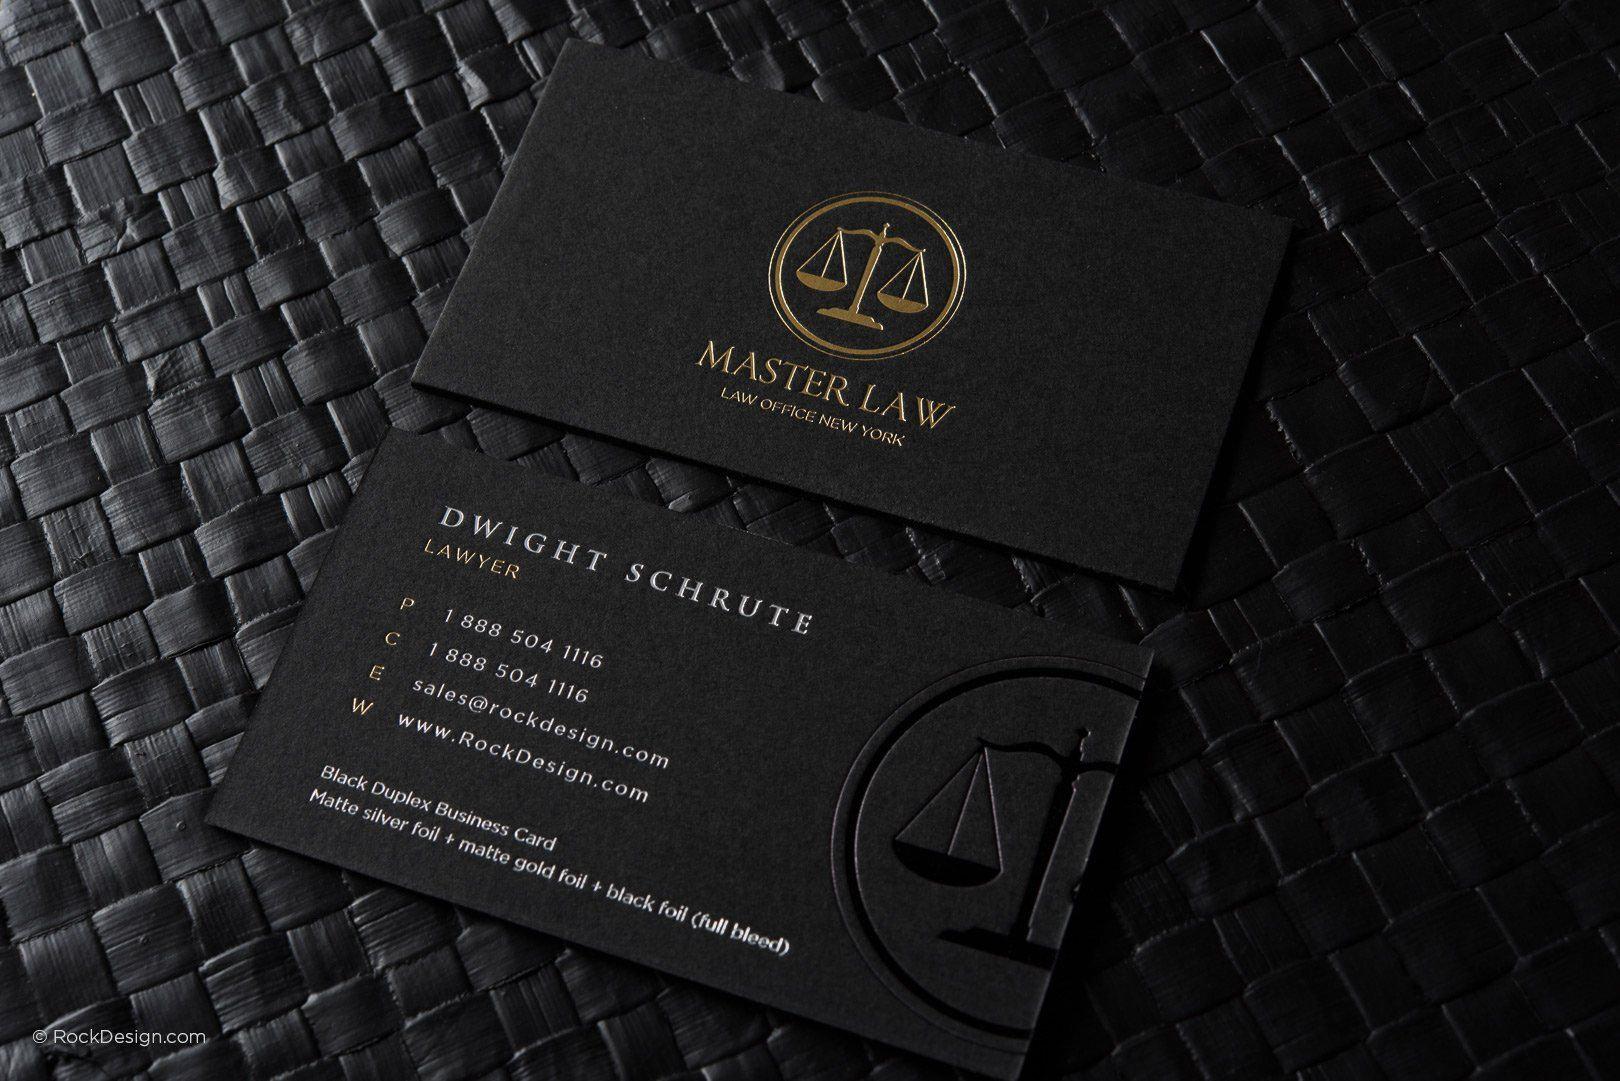 Free Lawyer Business Card Template Rockdesign Throughout Legal Business Cards Templates Fr Lawyer Business Card Attorney Business Cards Luxury Business Cards